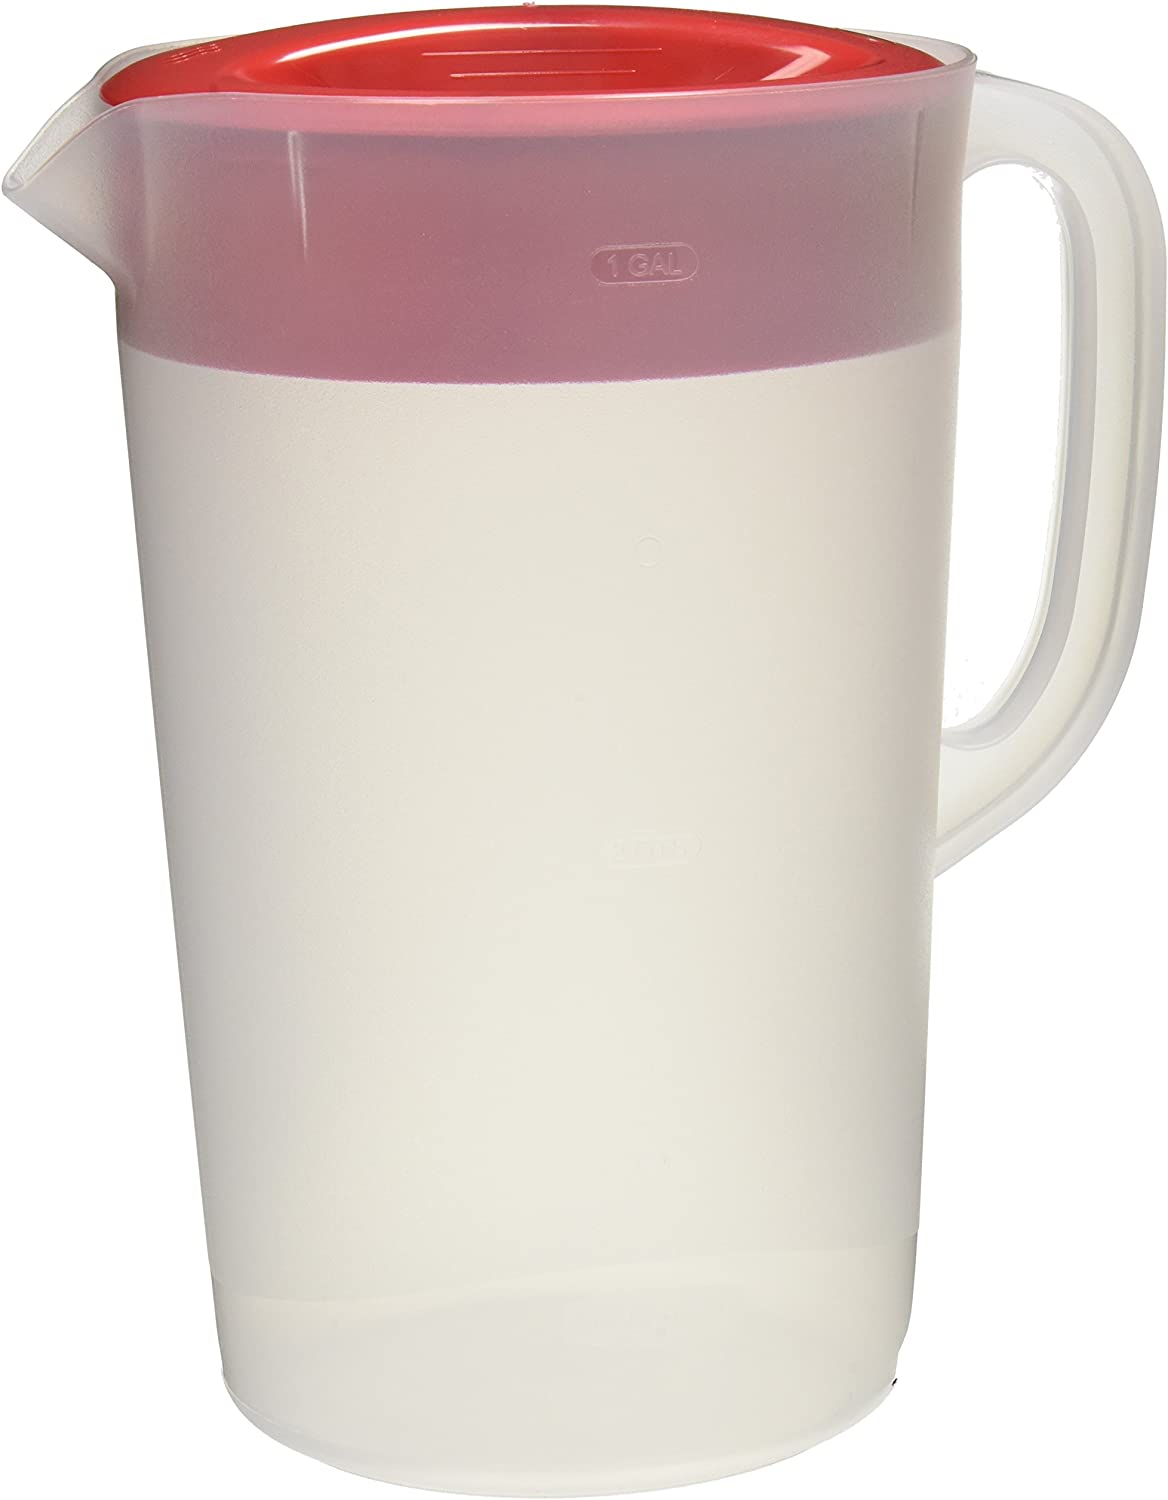 Rubbermaid Commercial RCP1777155 Not Not Available Rubbermaid Clear Pitcher, 1 Gallon, Red